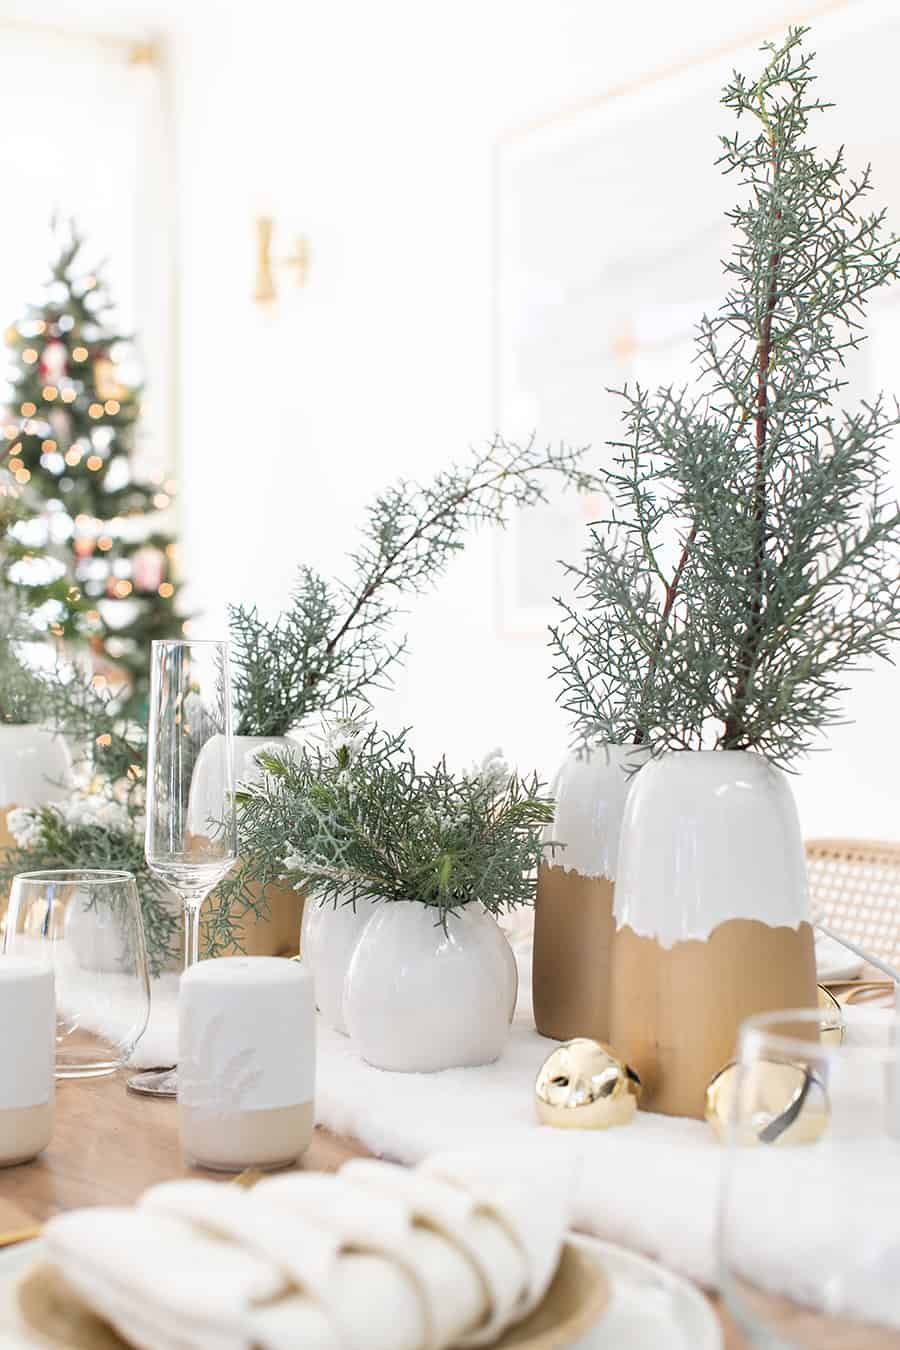 White and gold vases with holiday greens for a Christmas table setting